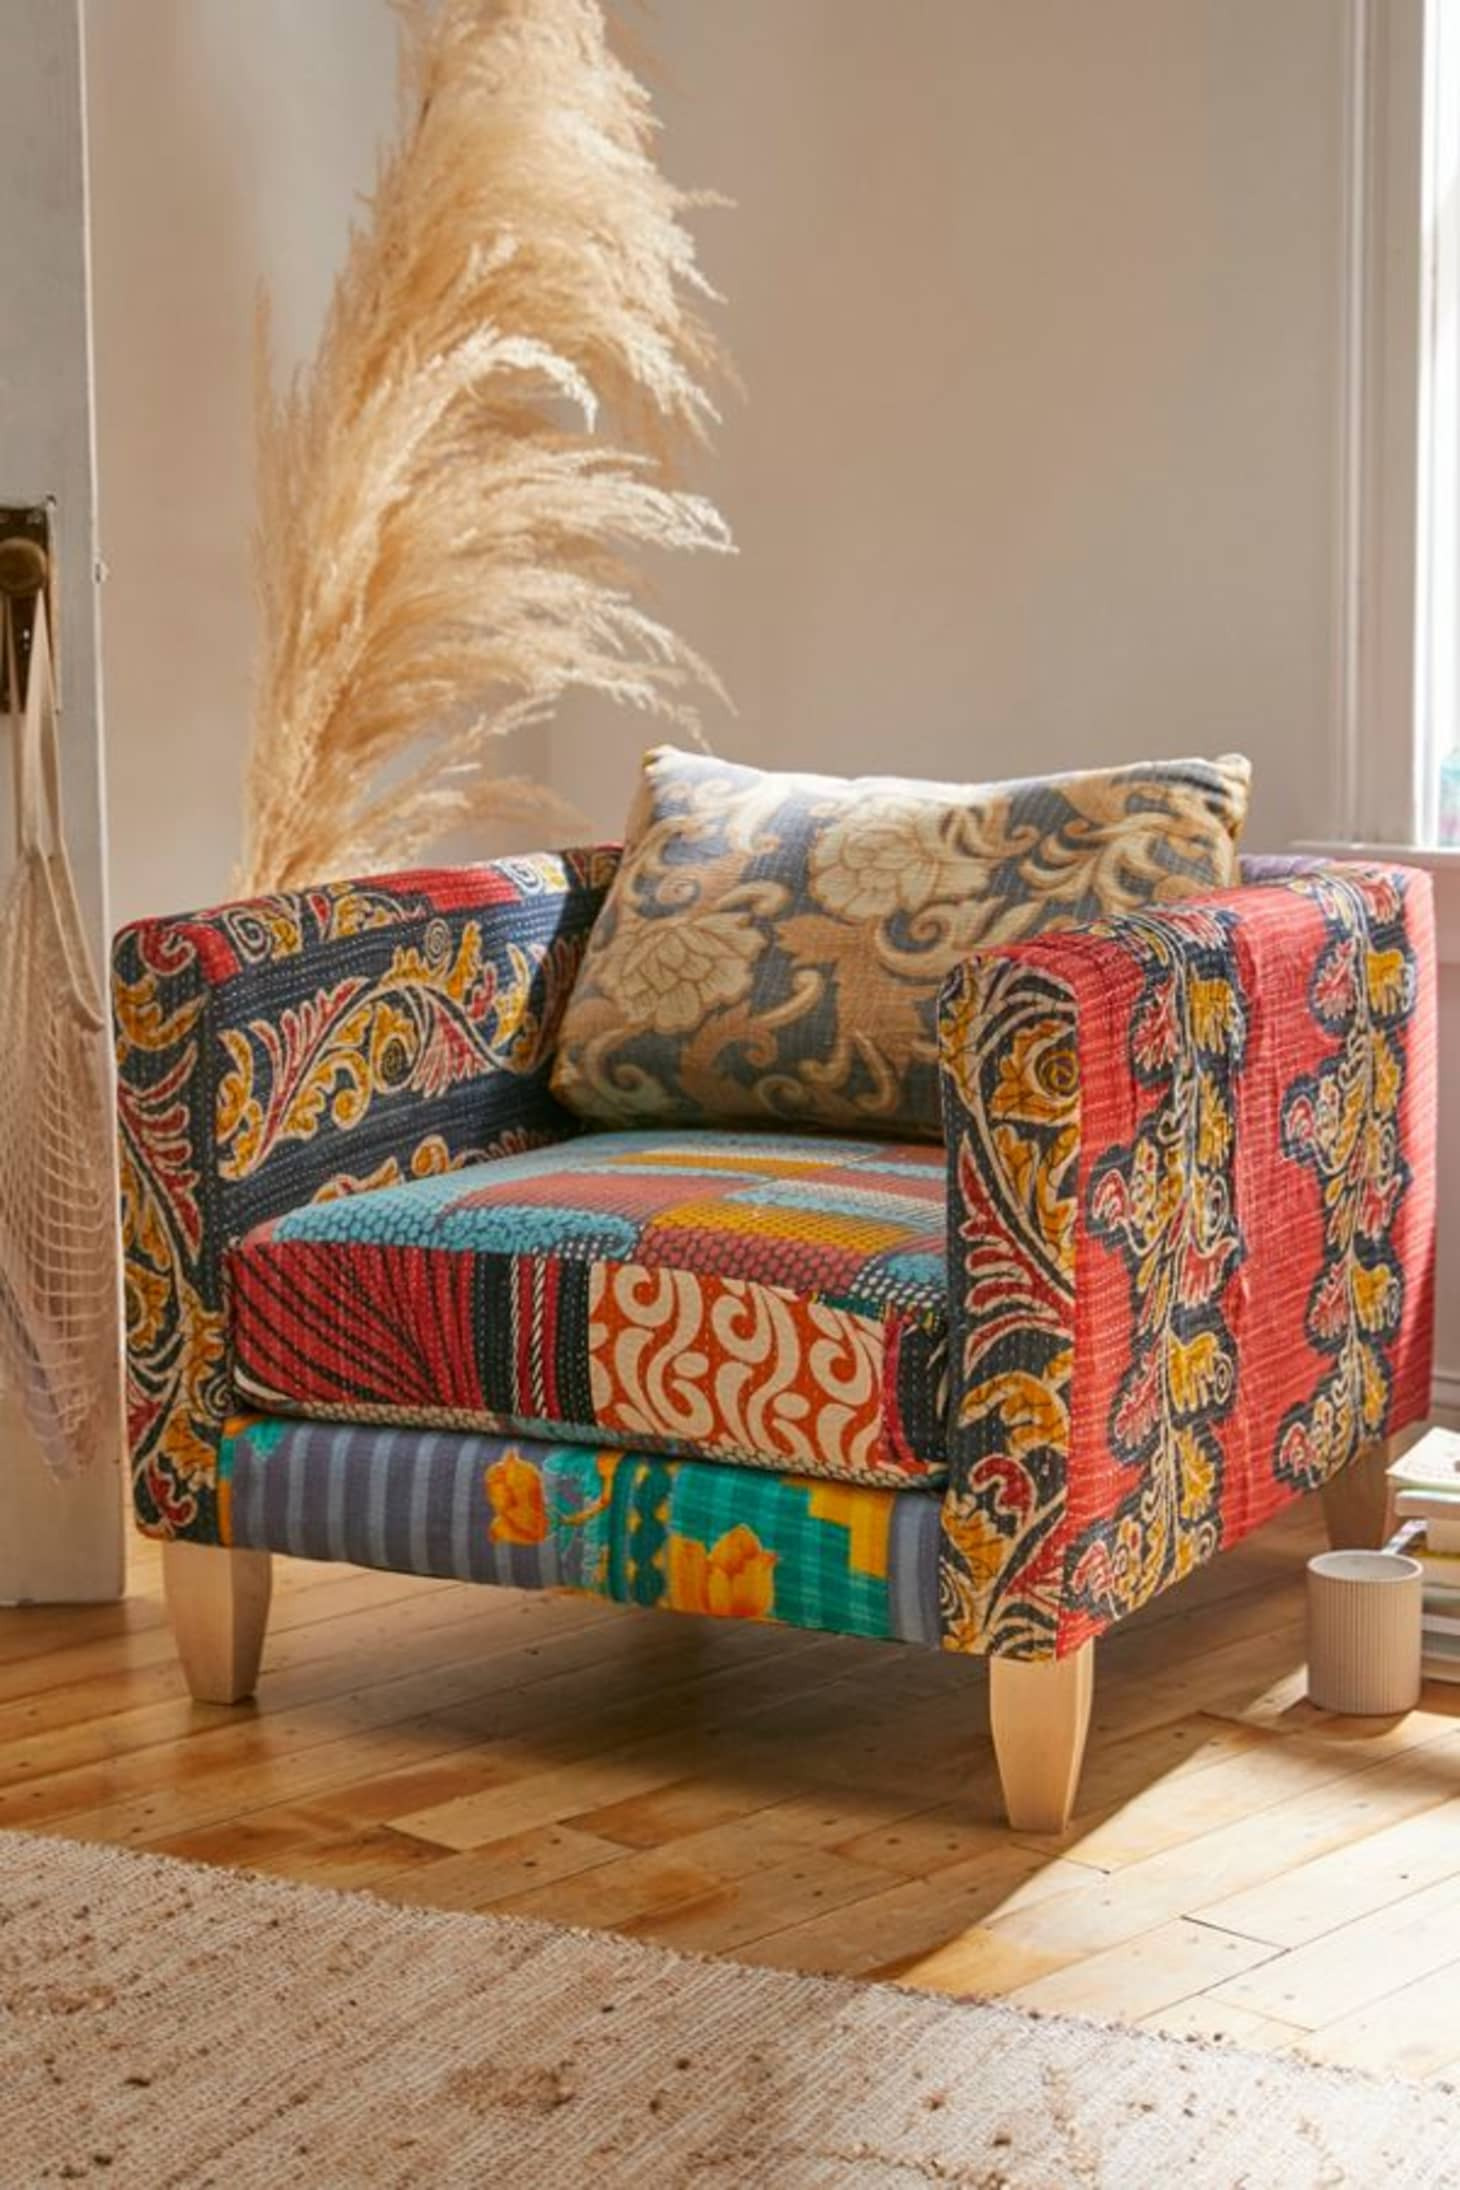 at product listing urban kantha chair